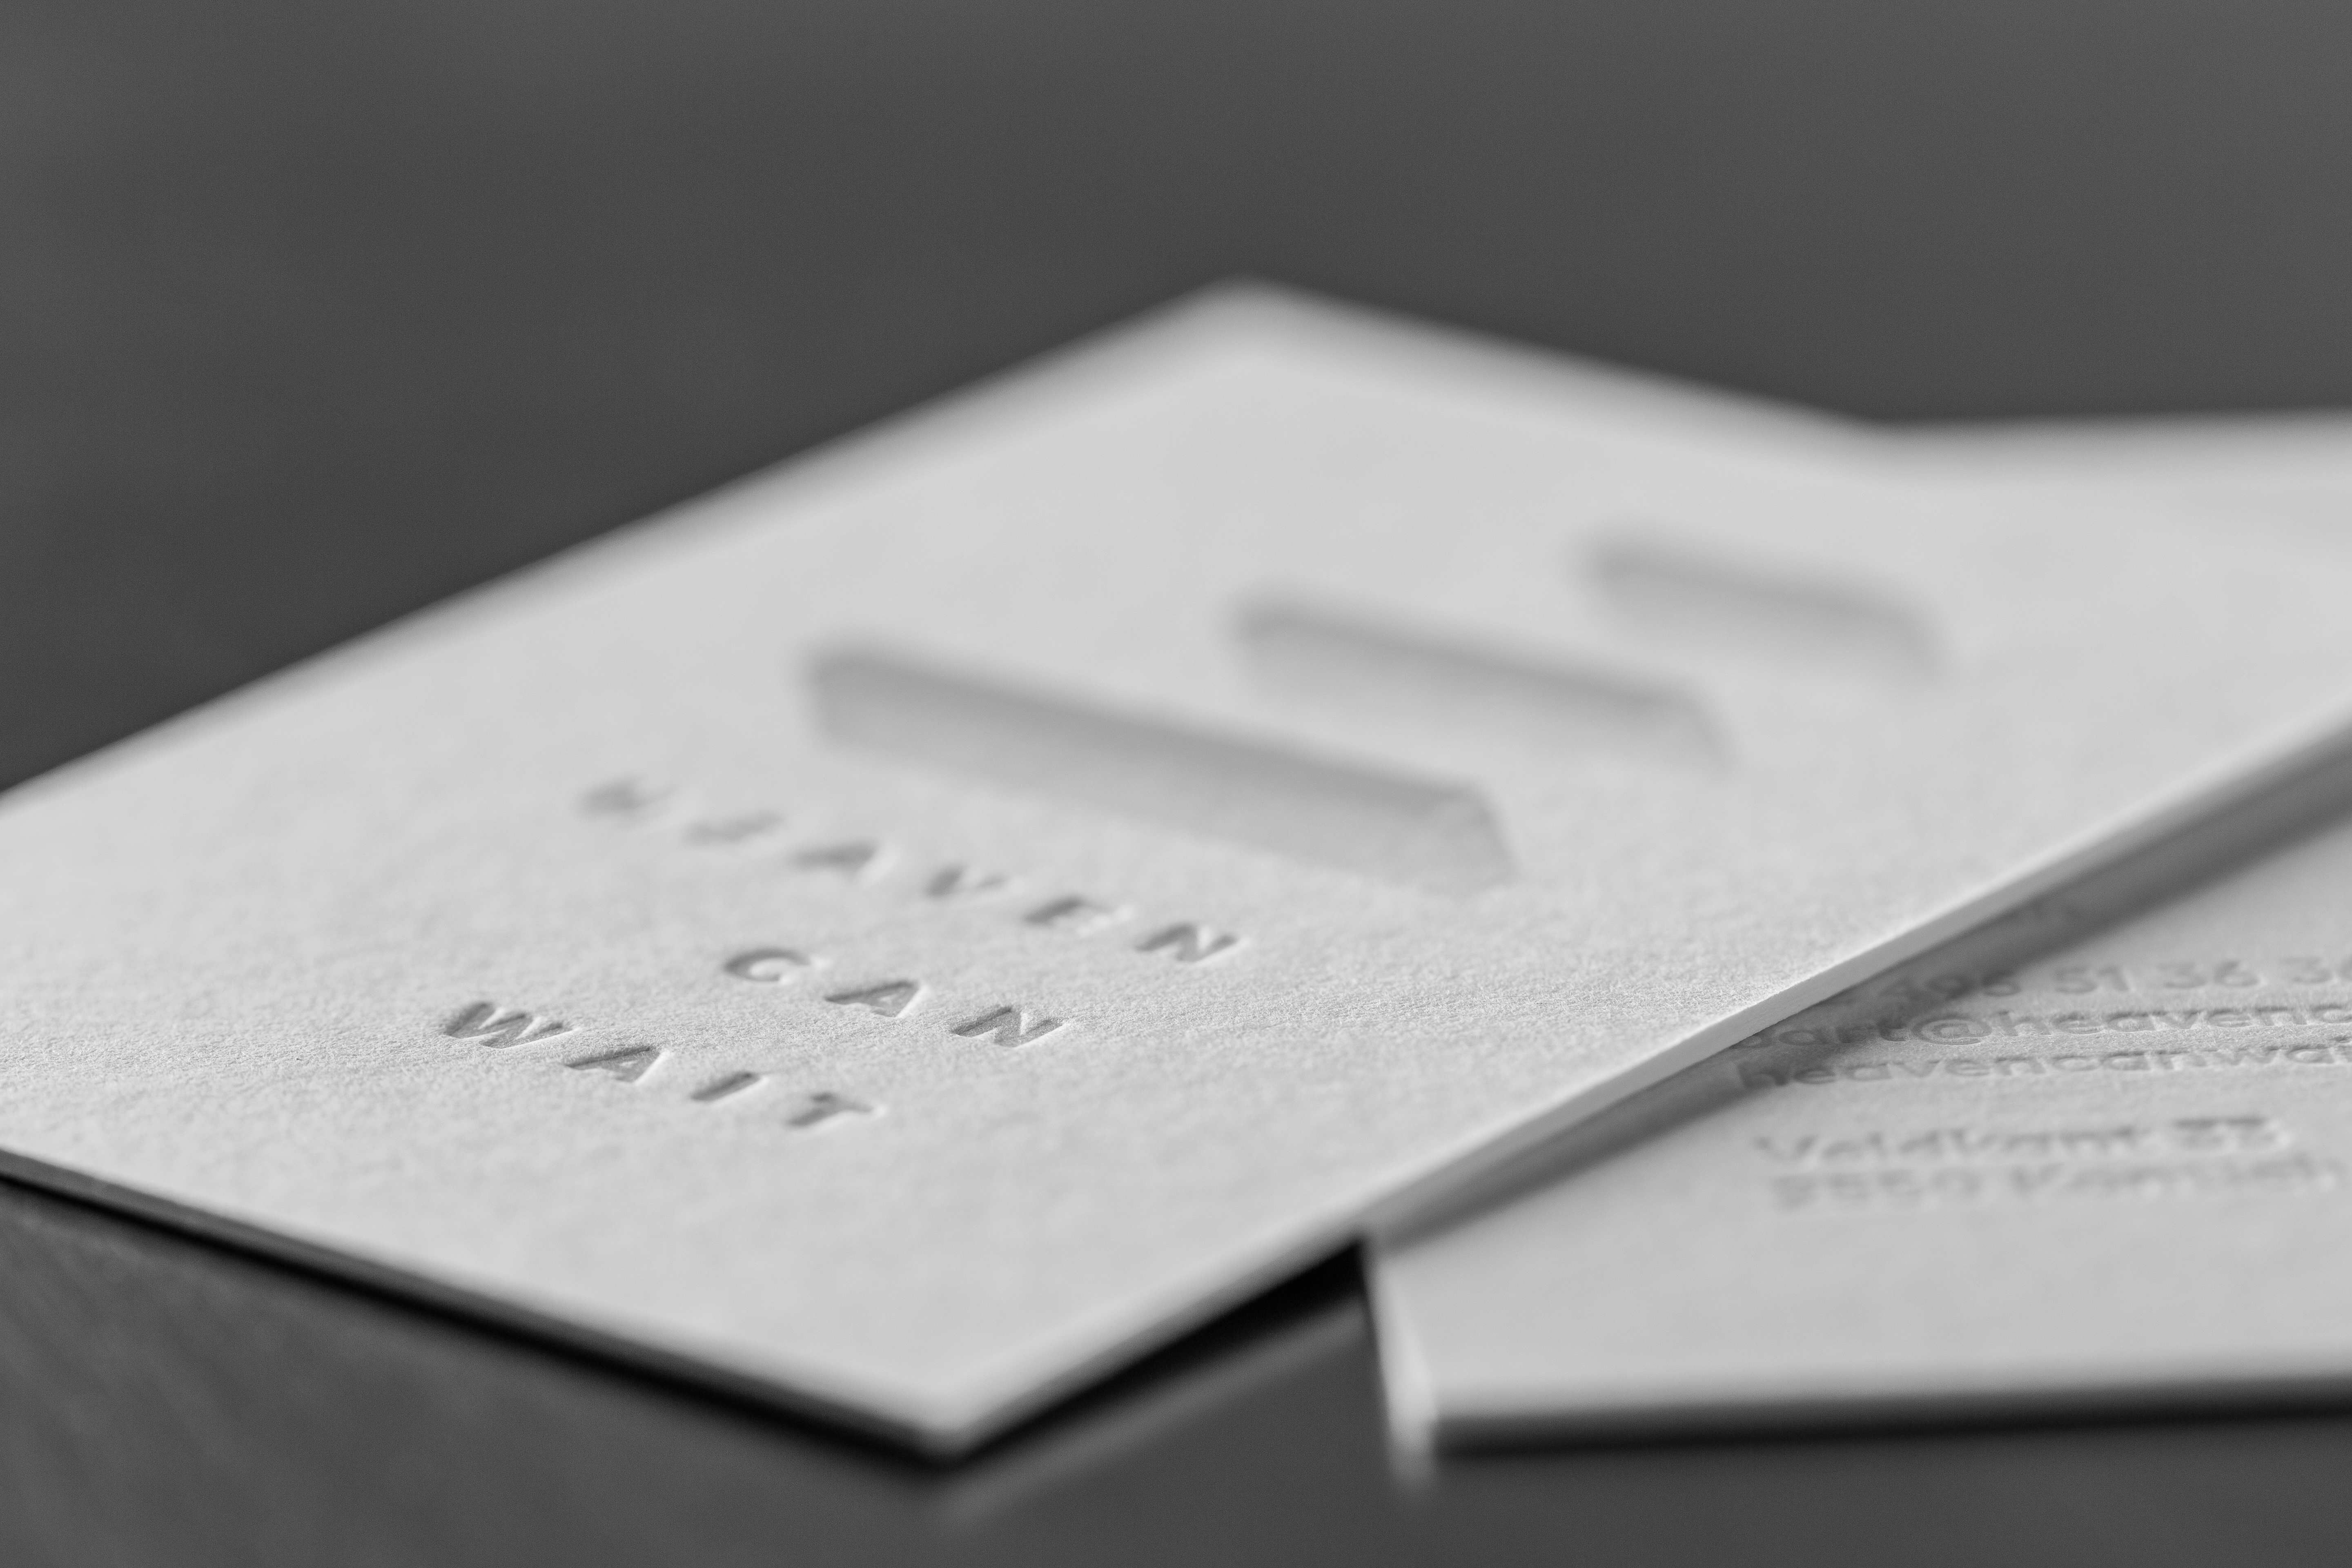 Business card heaven can wait white hotfoil on macho george paper business card heaven can wait white hotfoil on macho george paper proudly printed reheart Choice Image